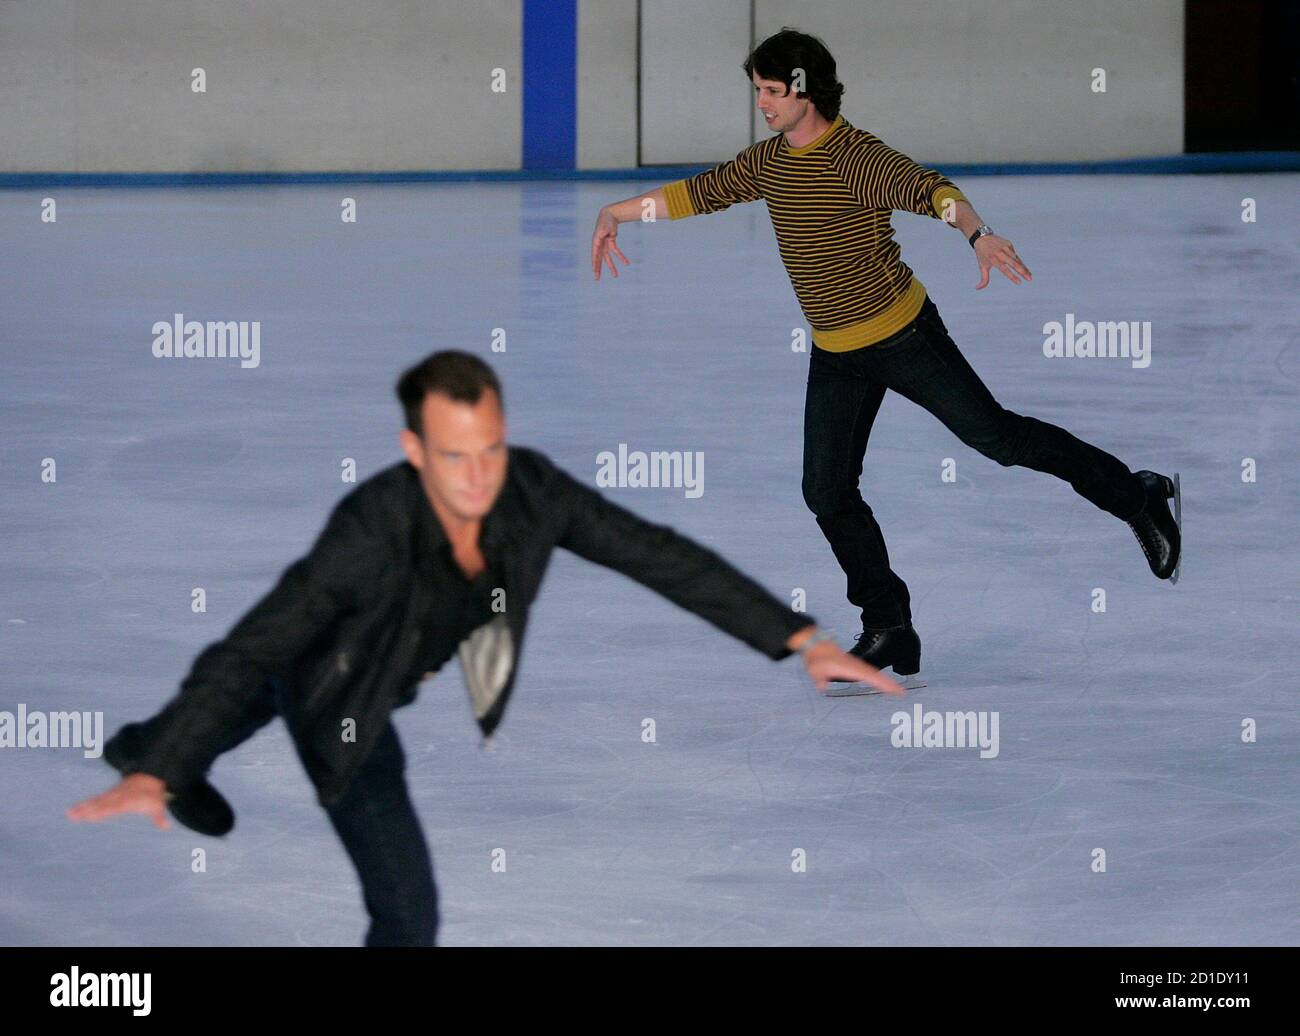 """Actors Jon Heder (R) and Will Arnett skate during a media opportunity at an ice skating rink to promote their film """"Blades of Glory"""" in Sydney June 6, 2007.         REUTERS/Tim Wimborne     (AUSTRALIA) Foto de stock"""